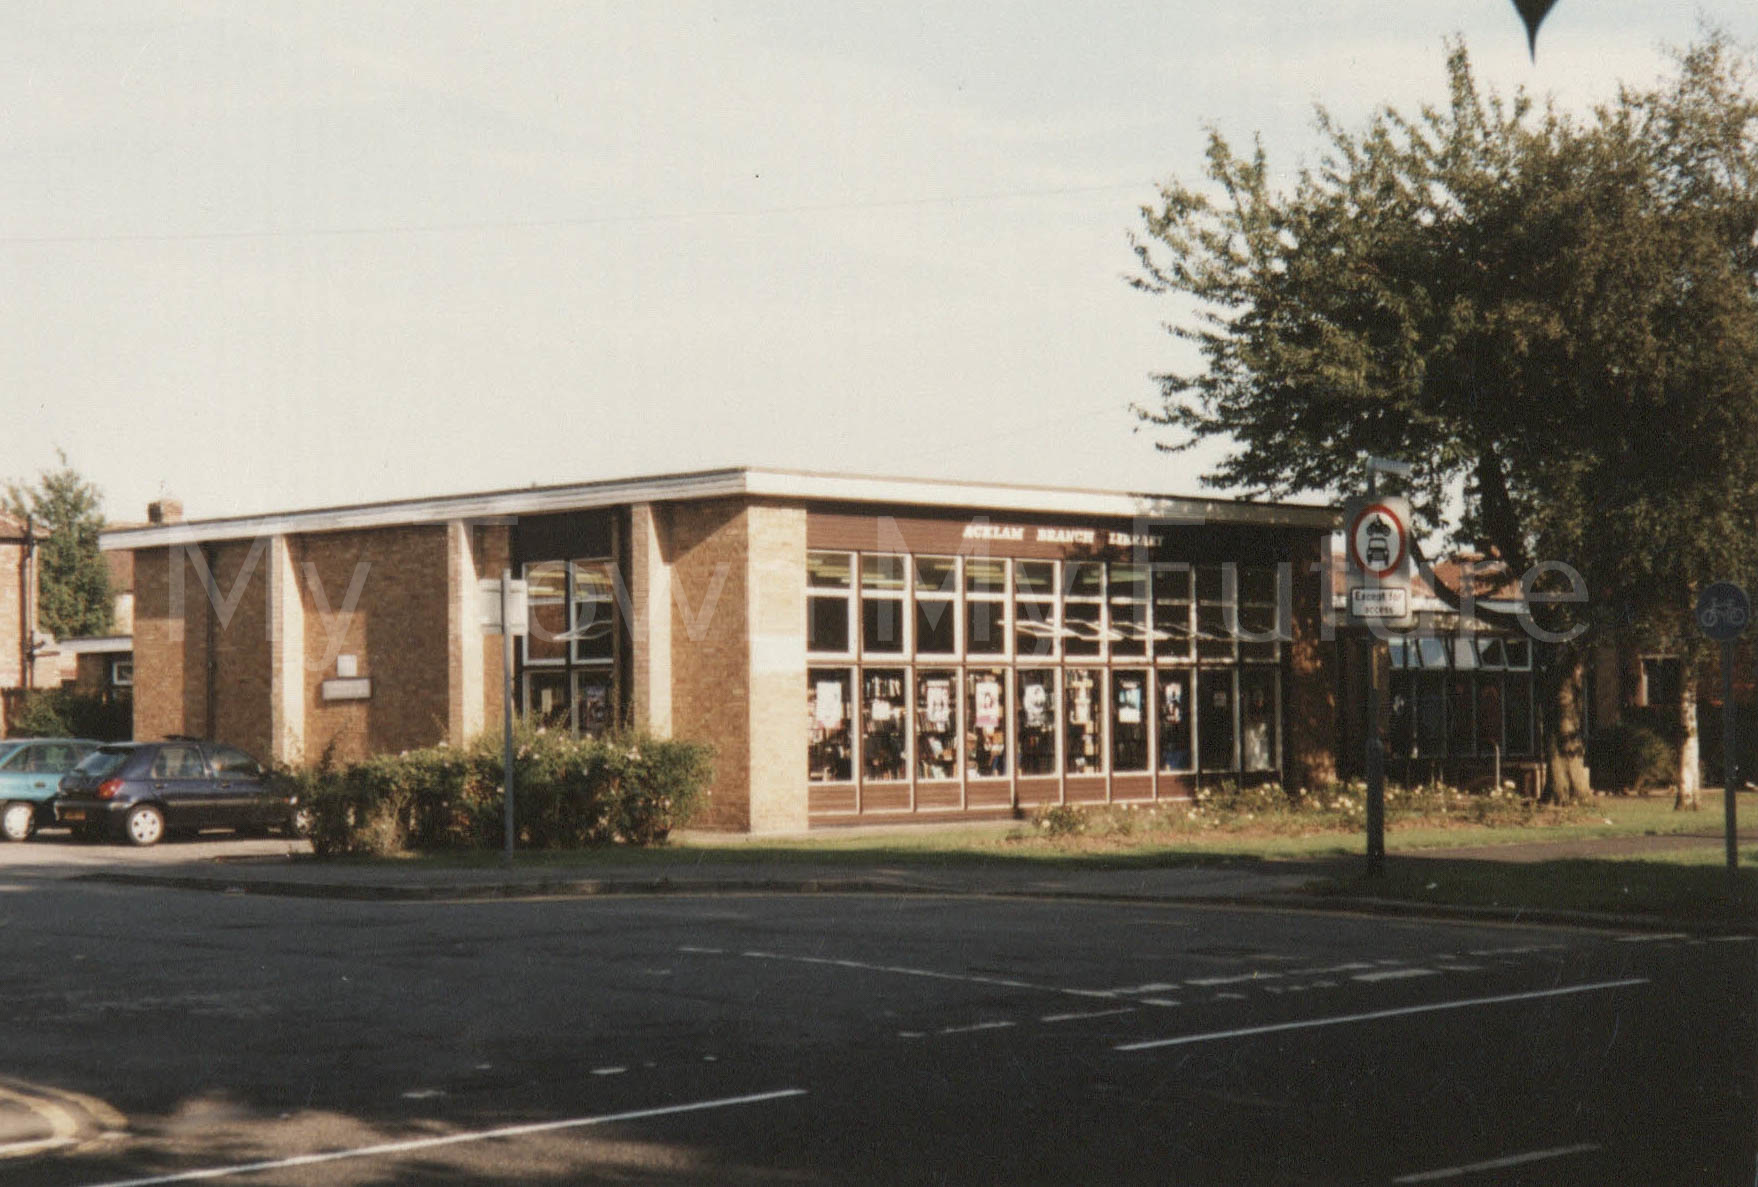 Acklam Branch Library (2003).